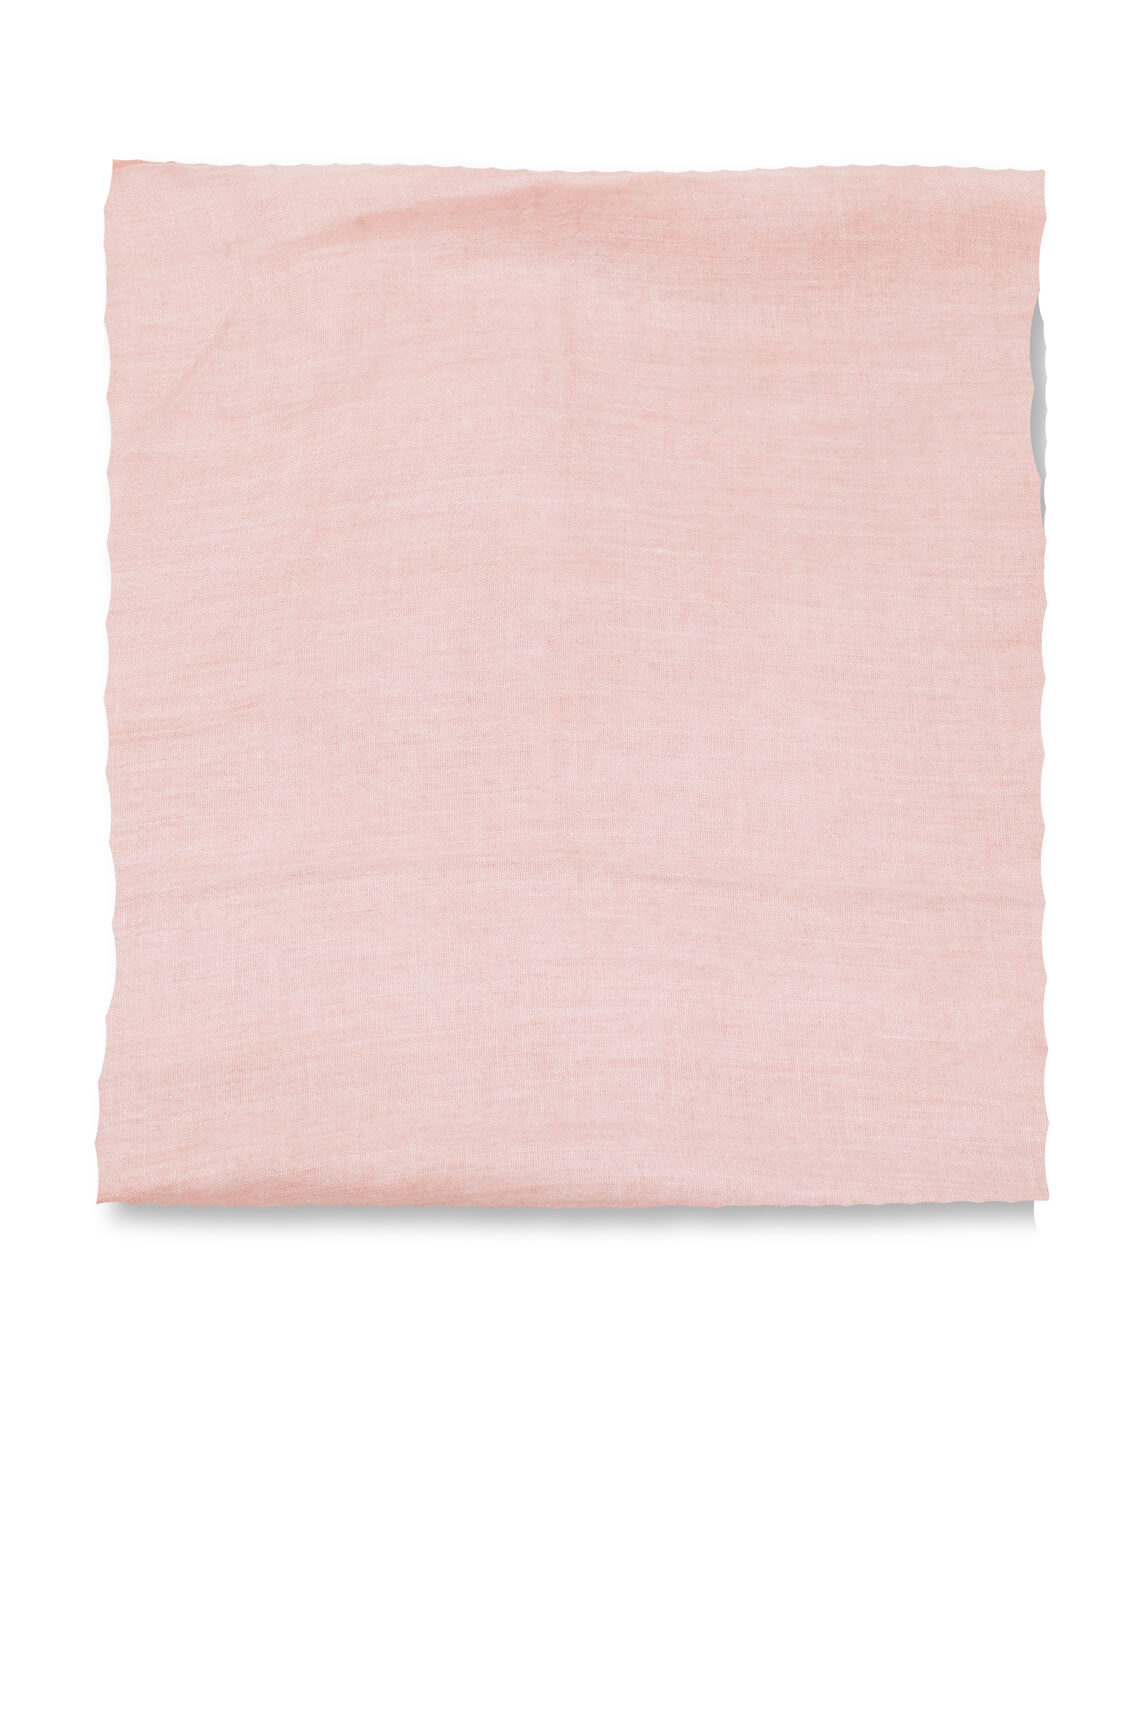 Moment by Moment Dames Shawl met zilver detail roze